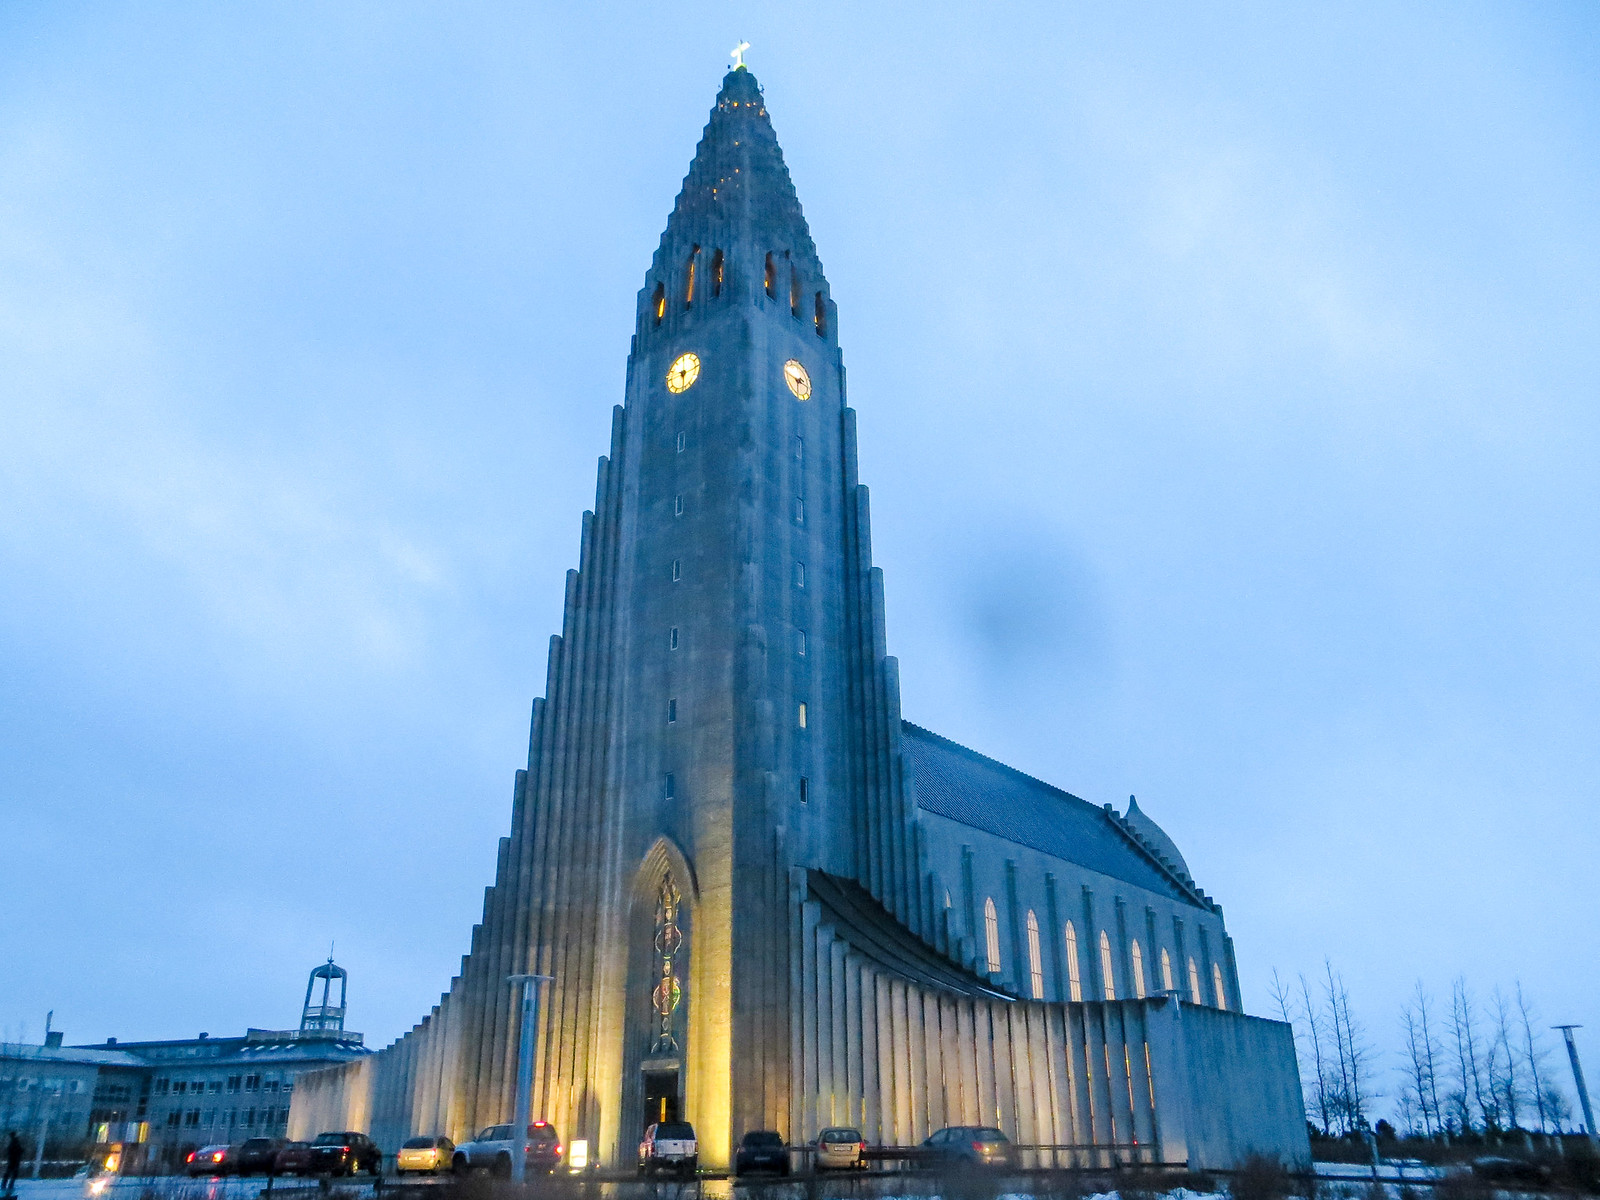 iceland solo travel itinerary: don't skip over hallgrimskirkja